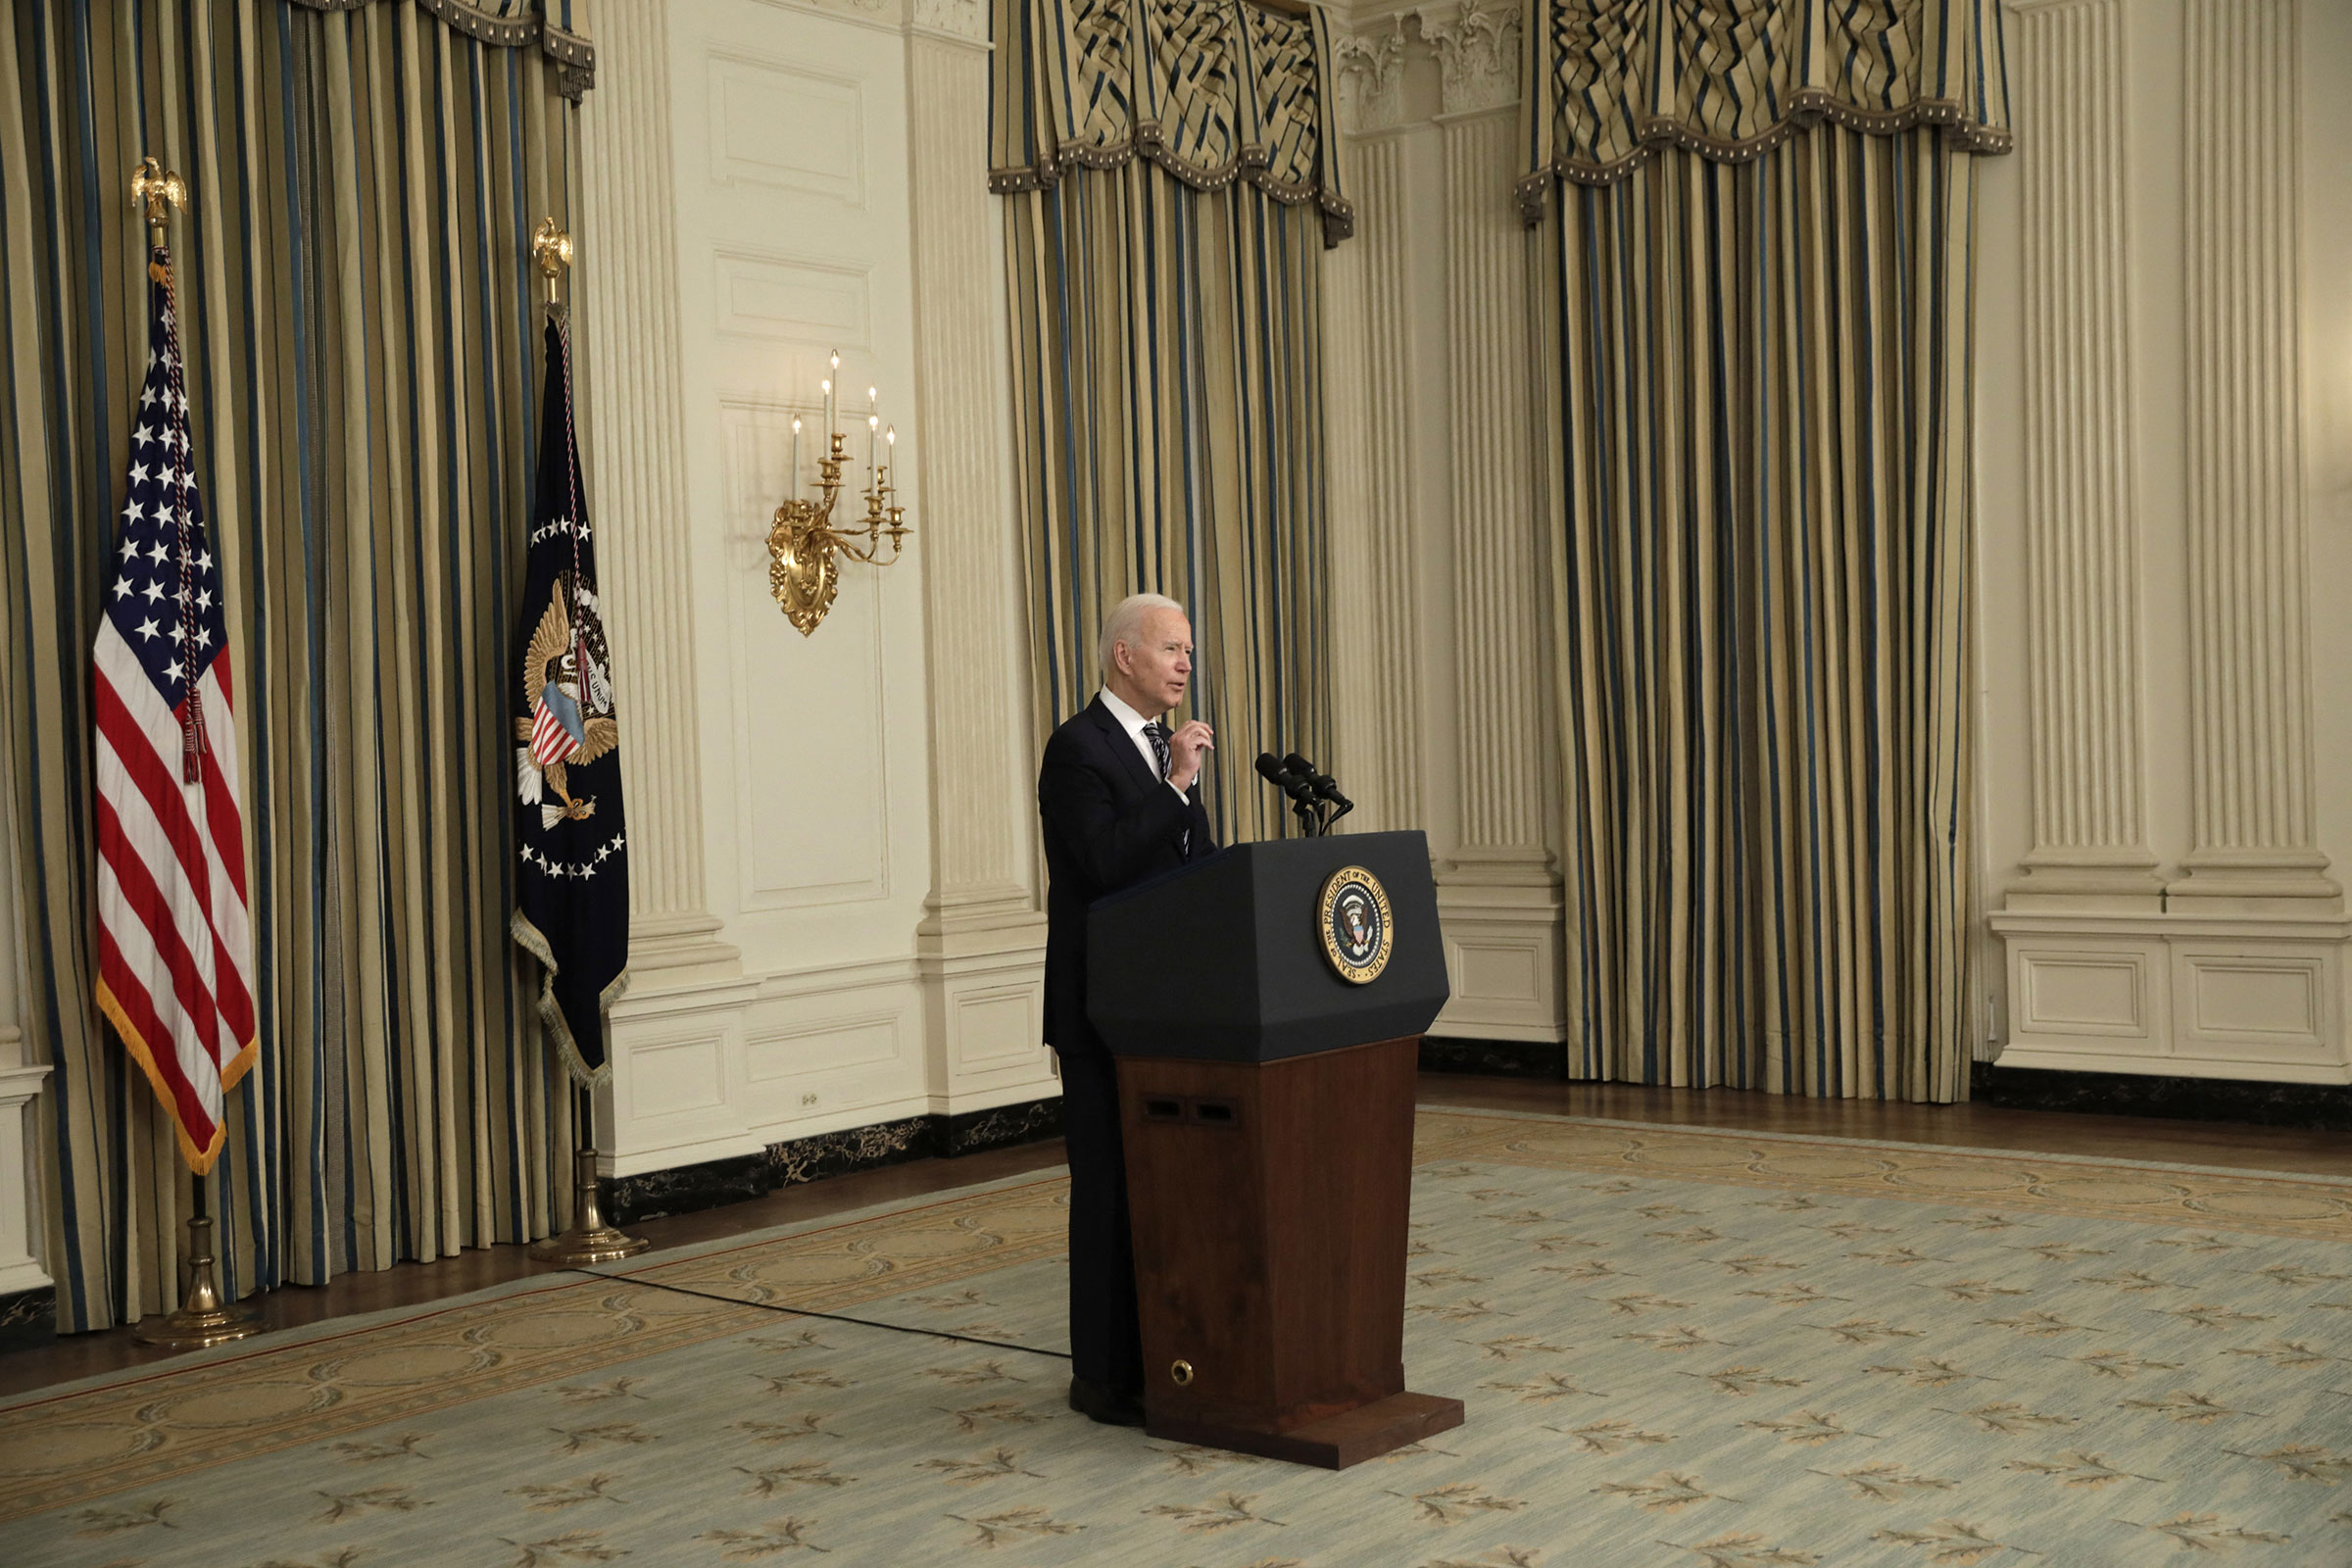 President Joe Biden delivers remarks on the implementation of the American Rescue Plan at the White House on March 15, 2021.